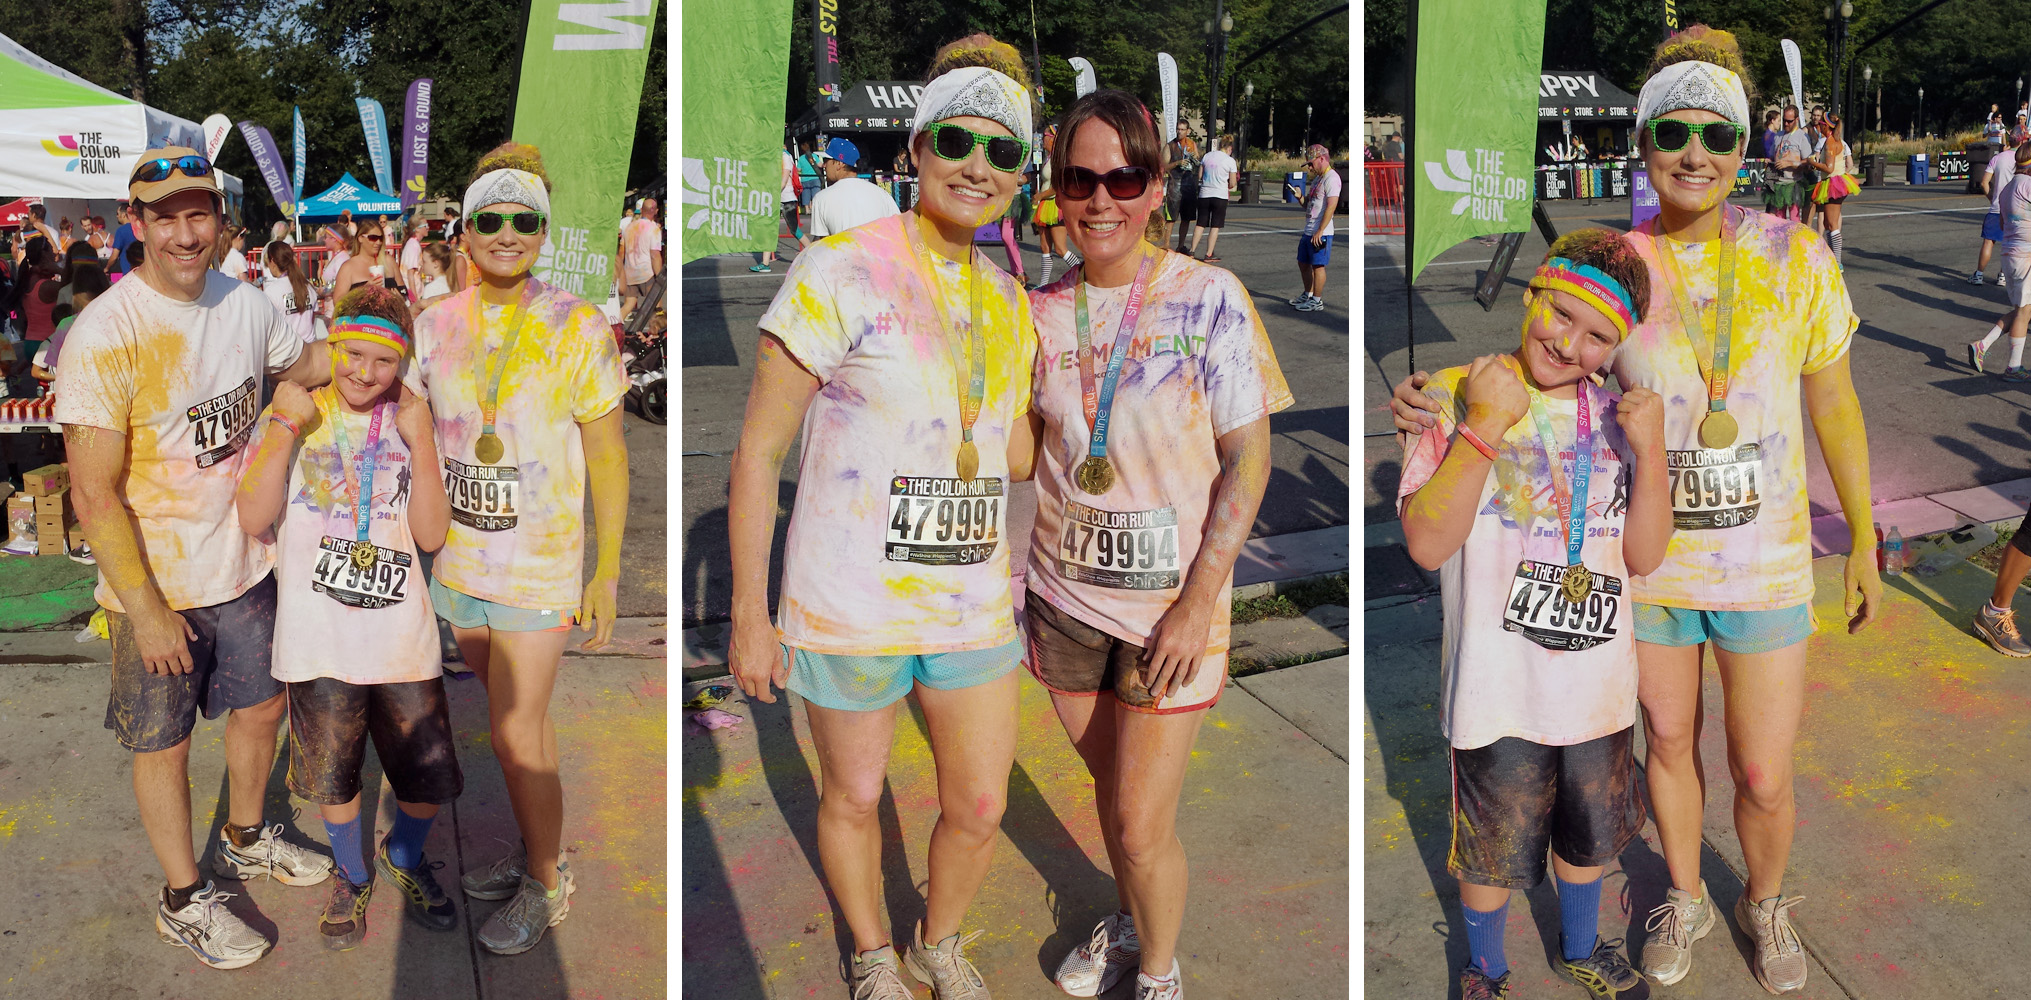 After pics from The Color Run